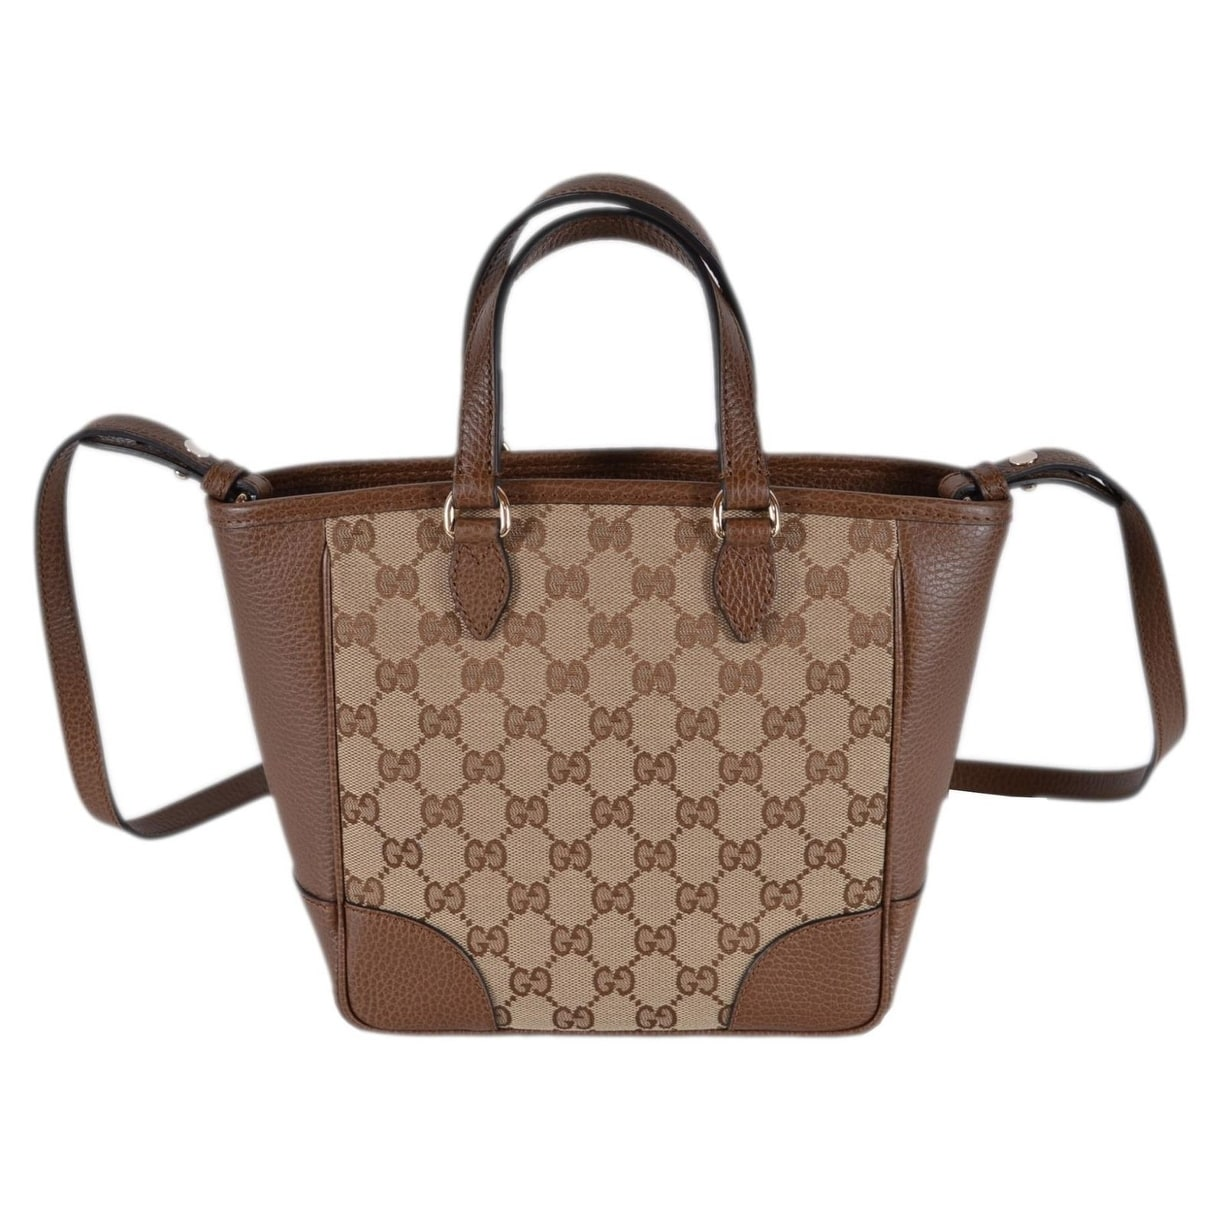 1ea8b2e24fd3 Shop Gucci Women s 449241 Beige Brown Small Bree GG Guccissima Crossbody Bag  - Free Shipping Today - Overstock - 24336649